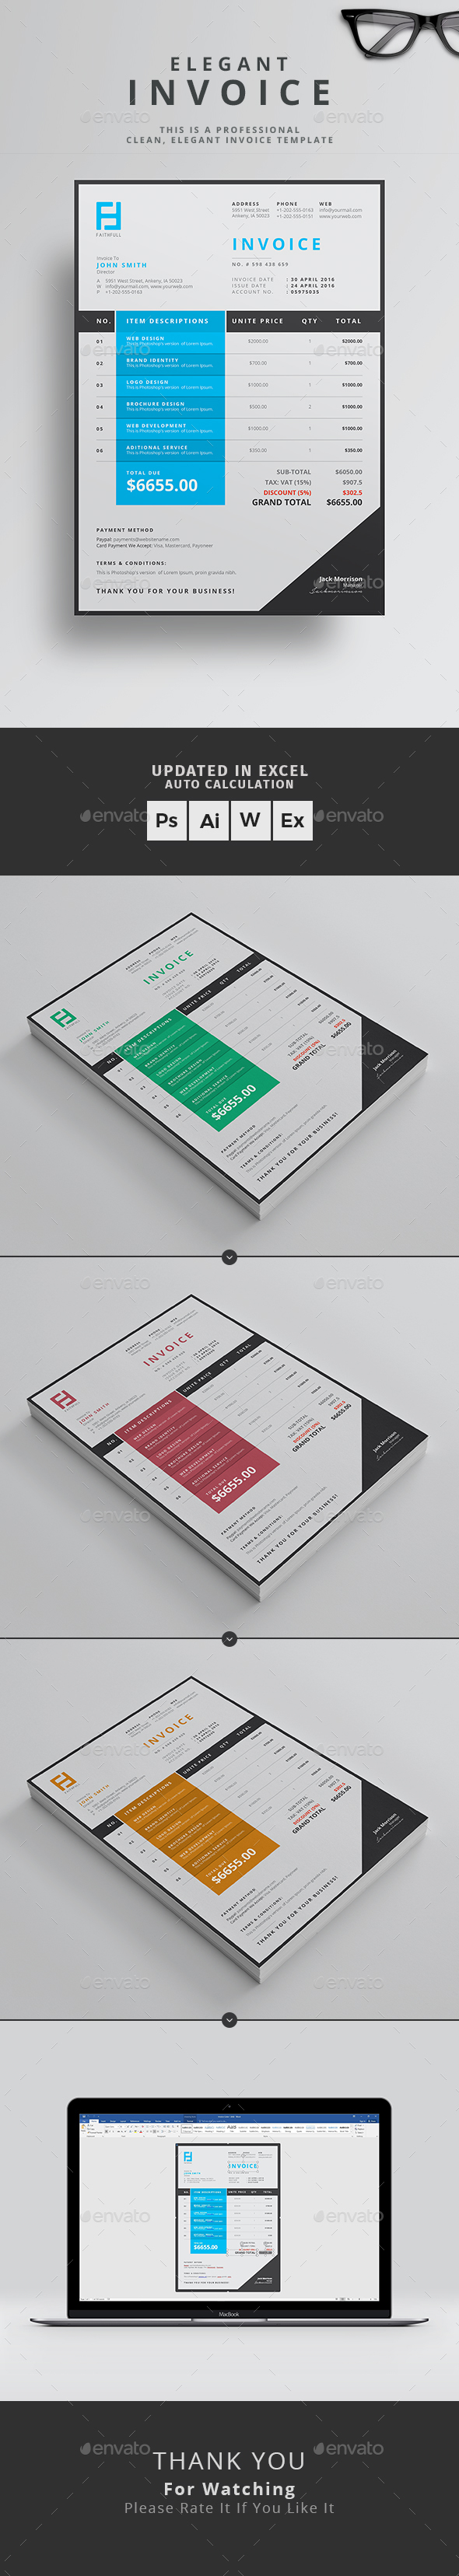 How To Turn Off Read Receipts Word Invoice By Themedevisers  Graphicriver Snappy Invoice Word with Credit Card Receipts Template Pdf Invoice  Proposals  Invoices Stationery On Receipt Of Invoice